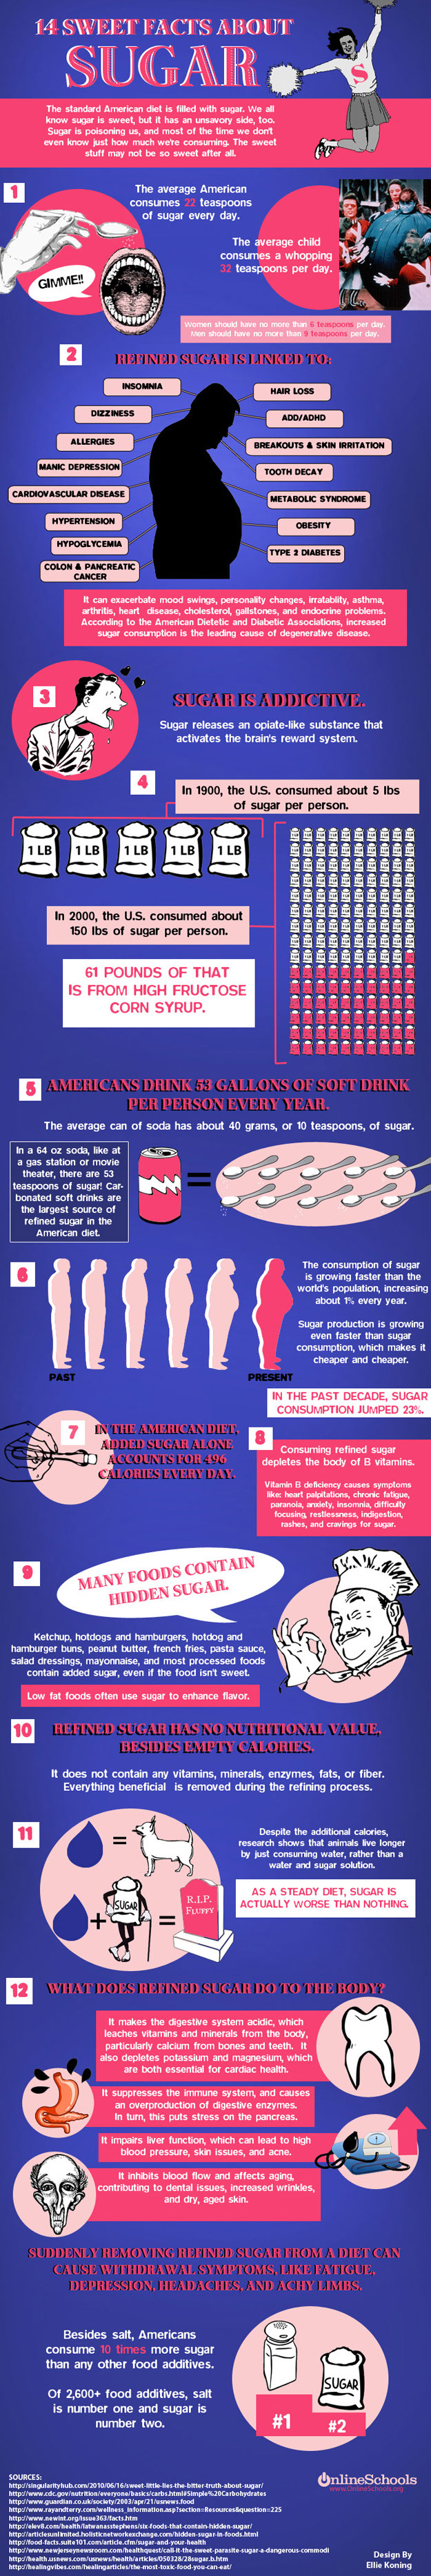 Perils of Sugar-Infographic